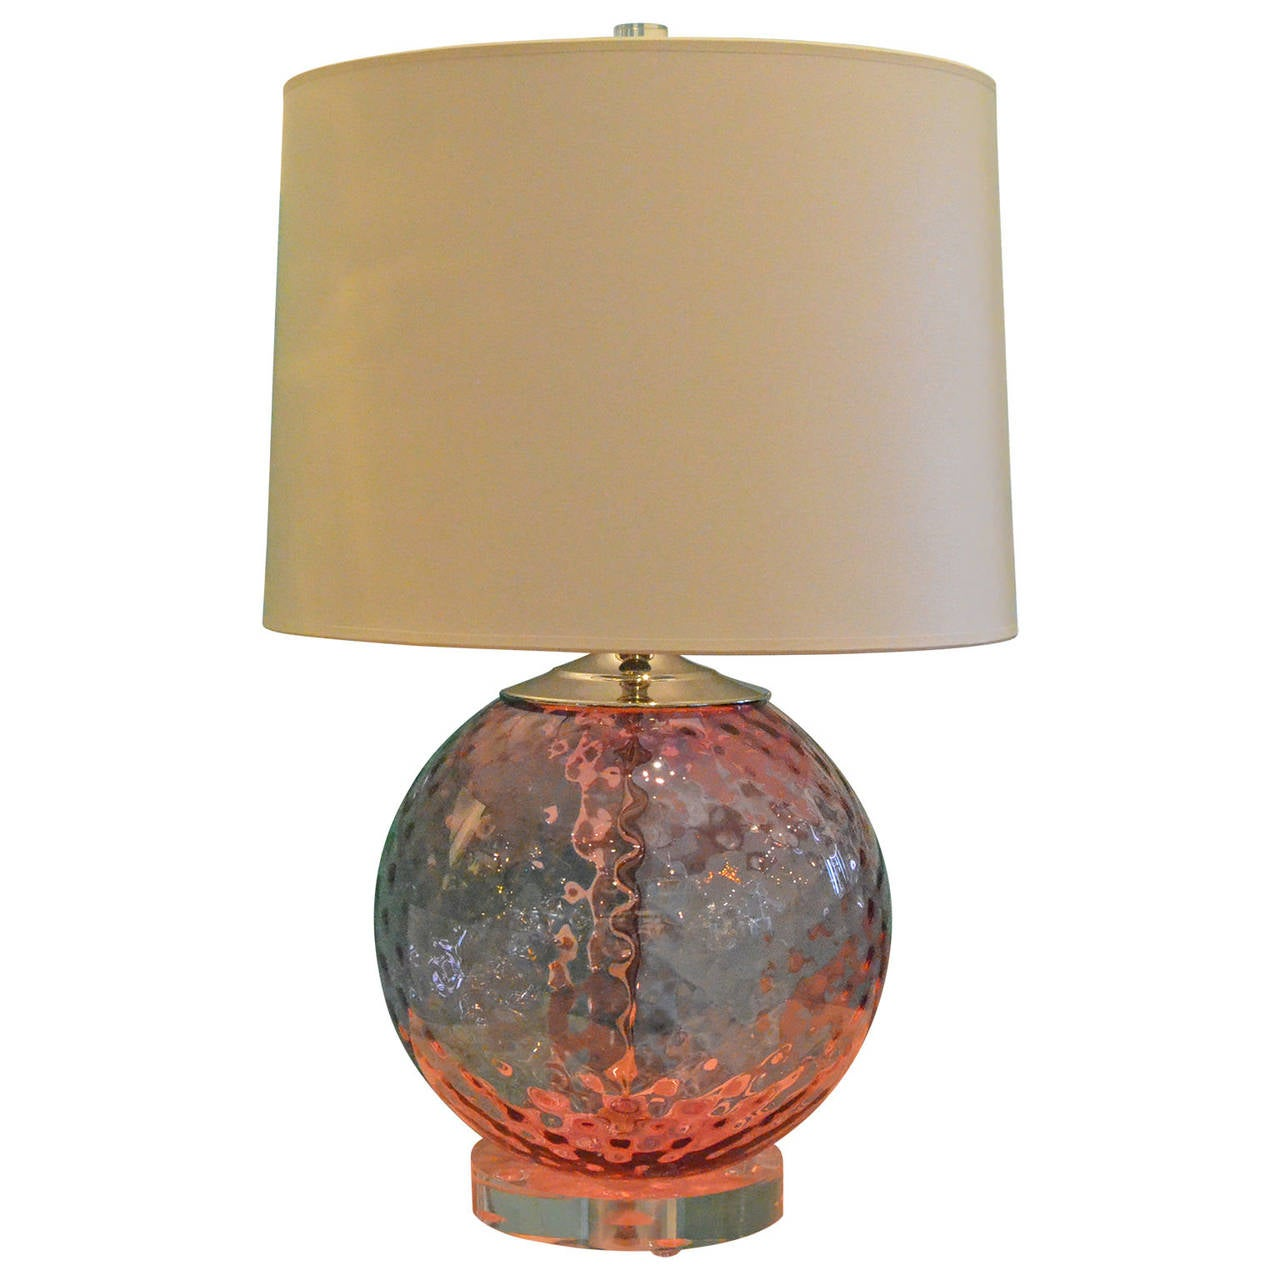 hot pink murano glass and lucite base table lamp for sale. Black Bedroom Furniture Sets. Home Design Ideas